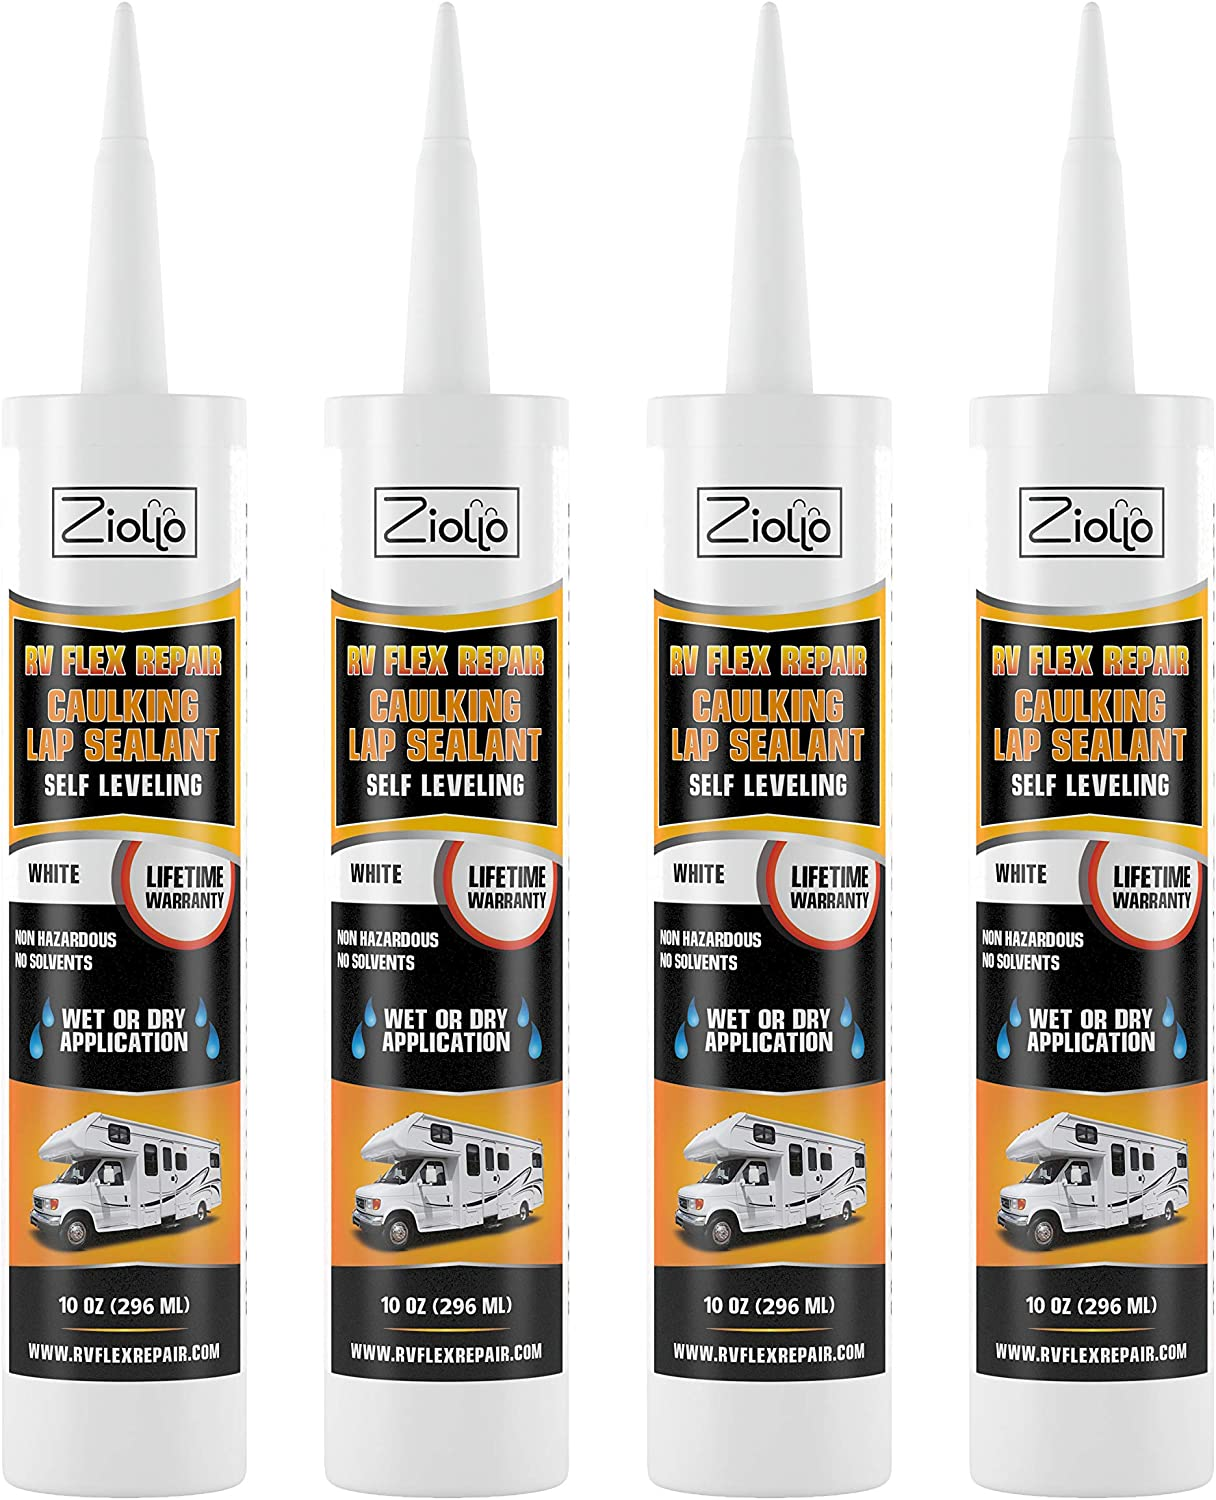 RV Flex Repair Self Leveling Caulking Lap Sealant